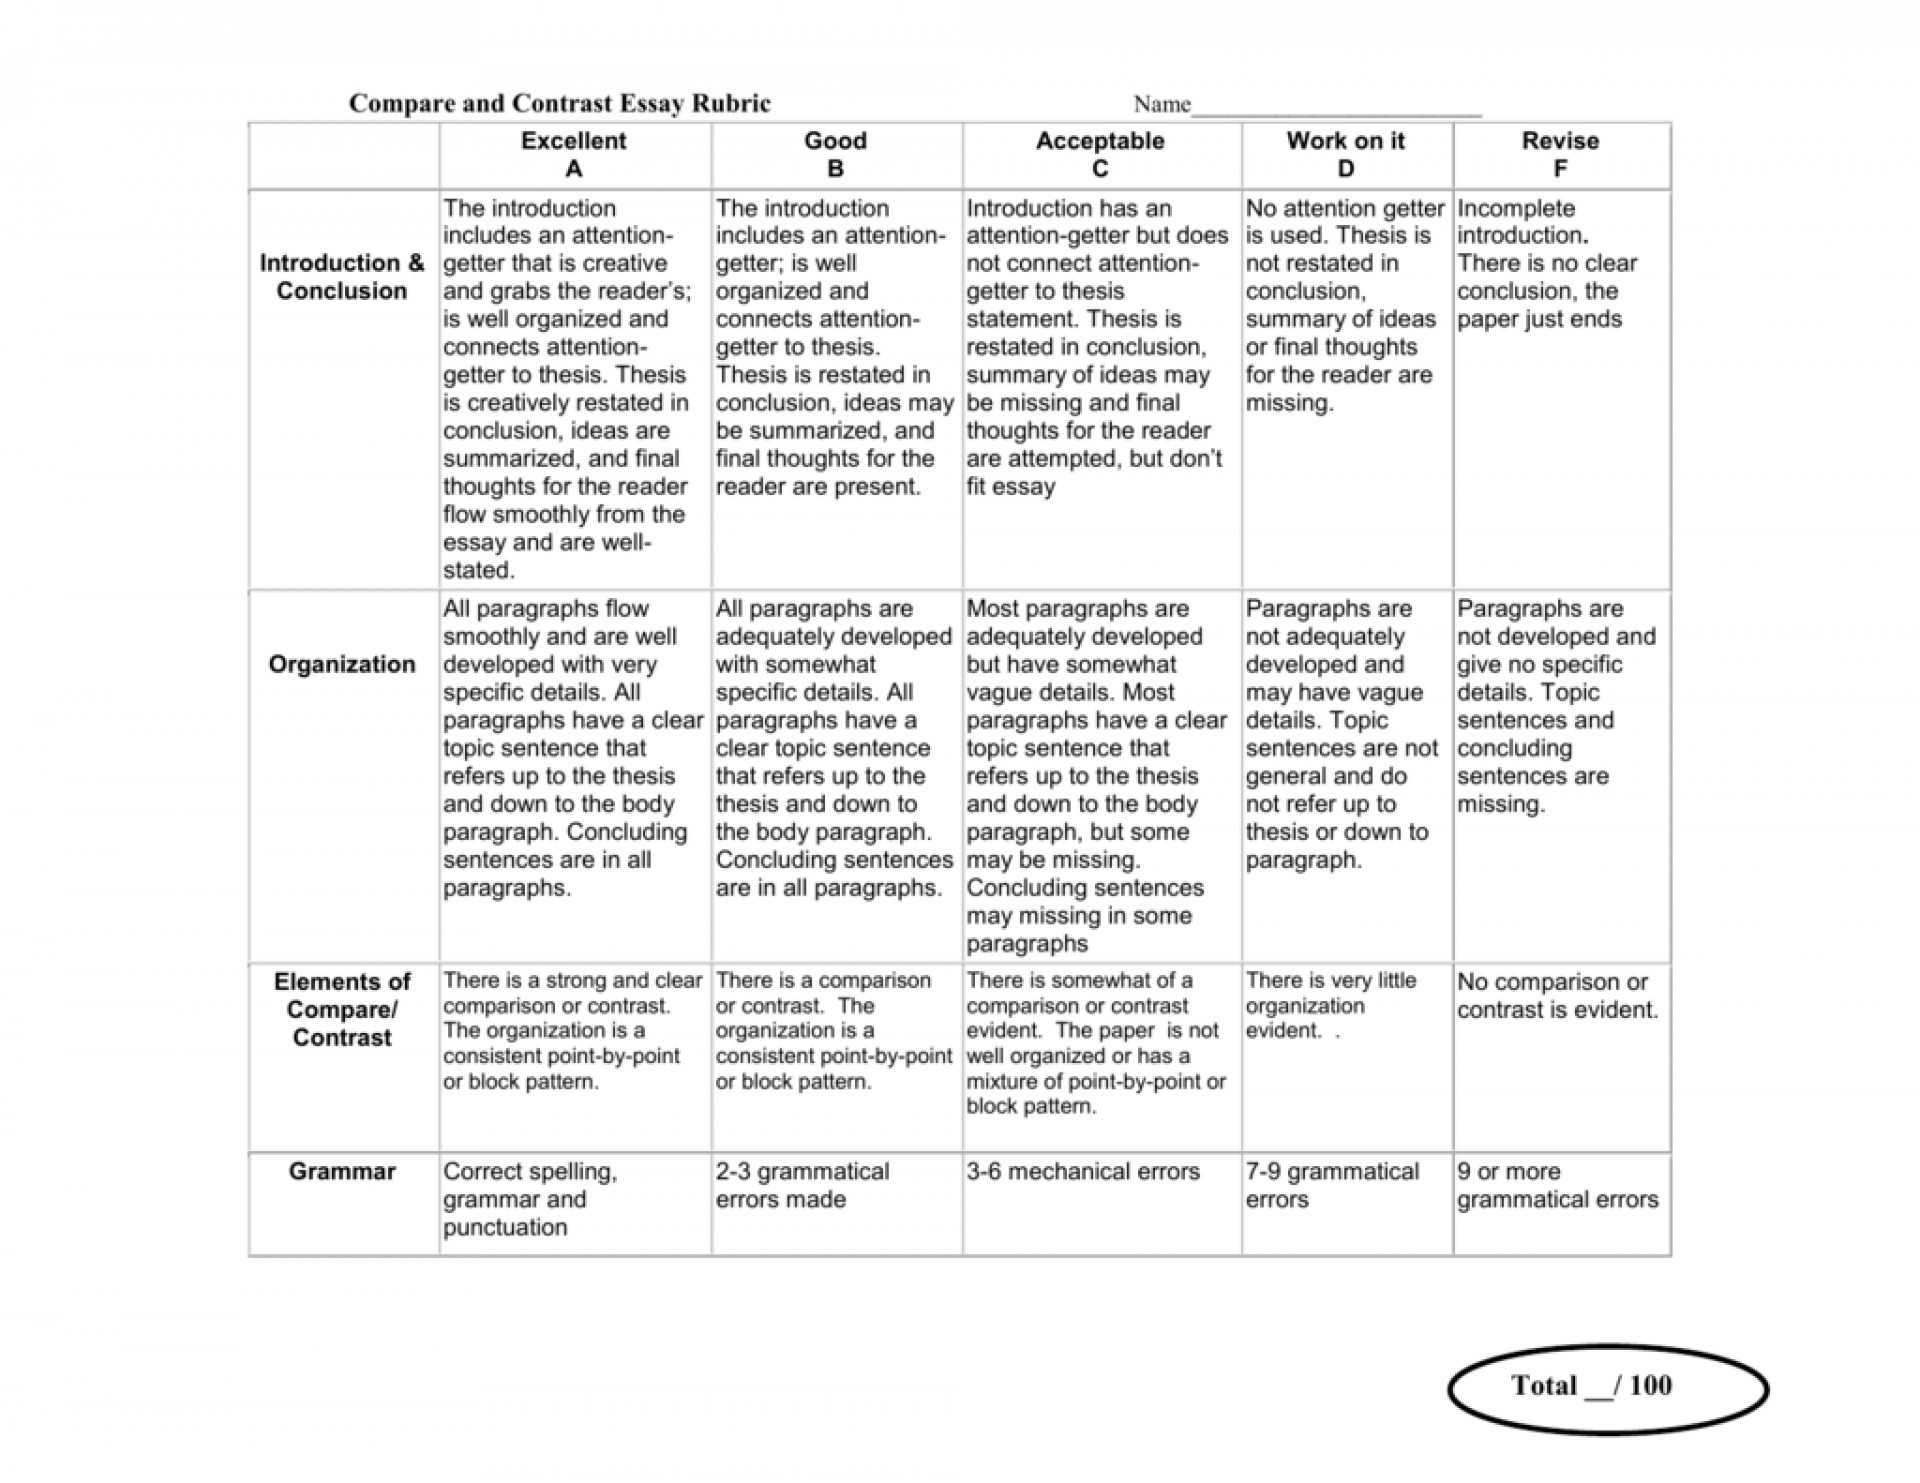 002 Essay Example Compare And Contrast Rubric 007703019 2 Wondrous 4th Grade 7th 3rd 1920